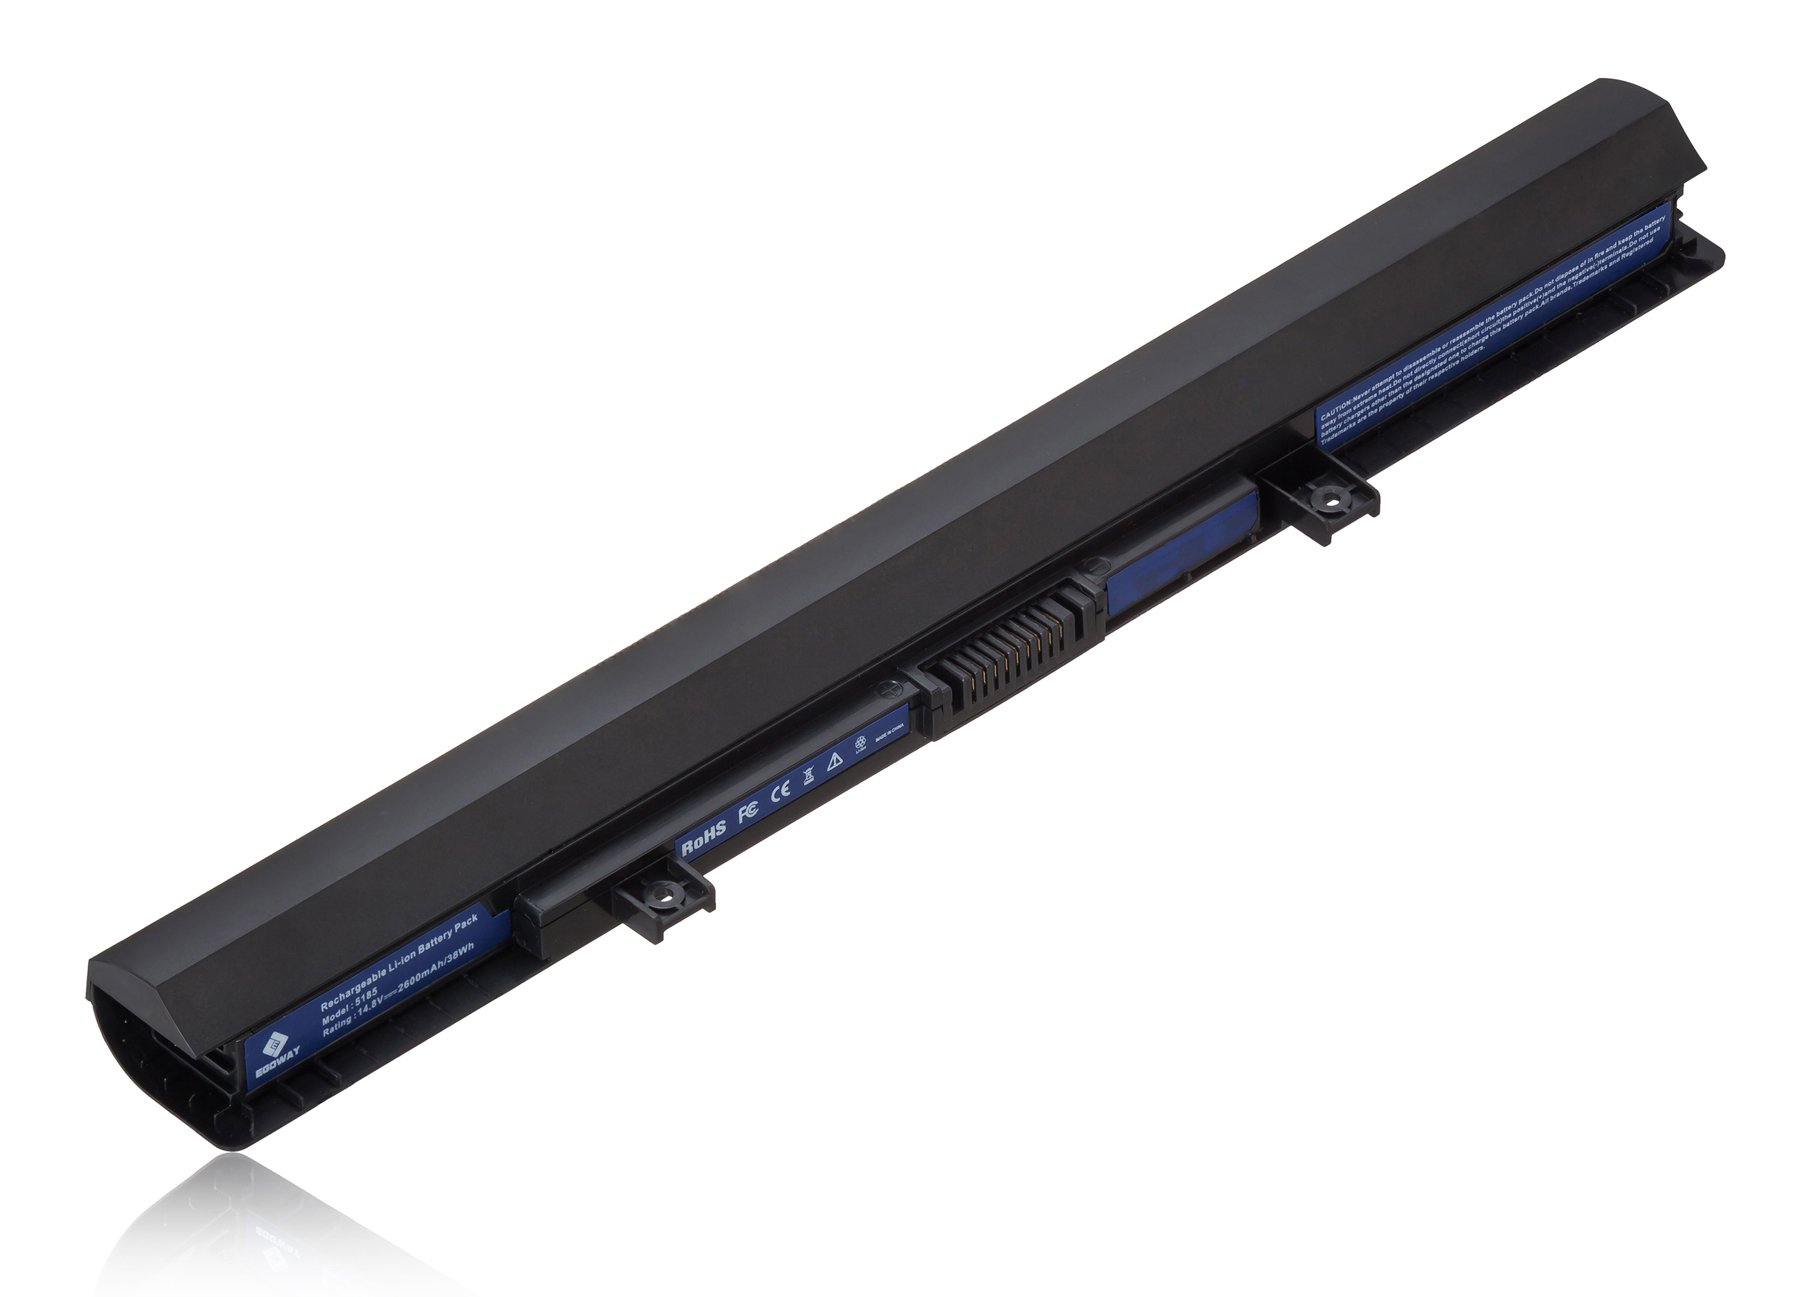 Egoway Replacement Laptop Battery for Toshiba PA5185U-1BRS PA5186U-1BRS PA5184U-1BRS Satellite C55 S55 S55T E45-B4100 Series (14.8V 2600mAh)